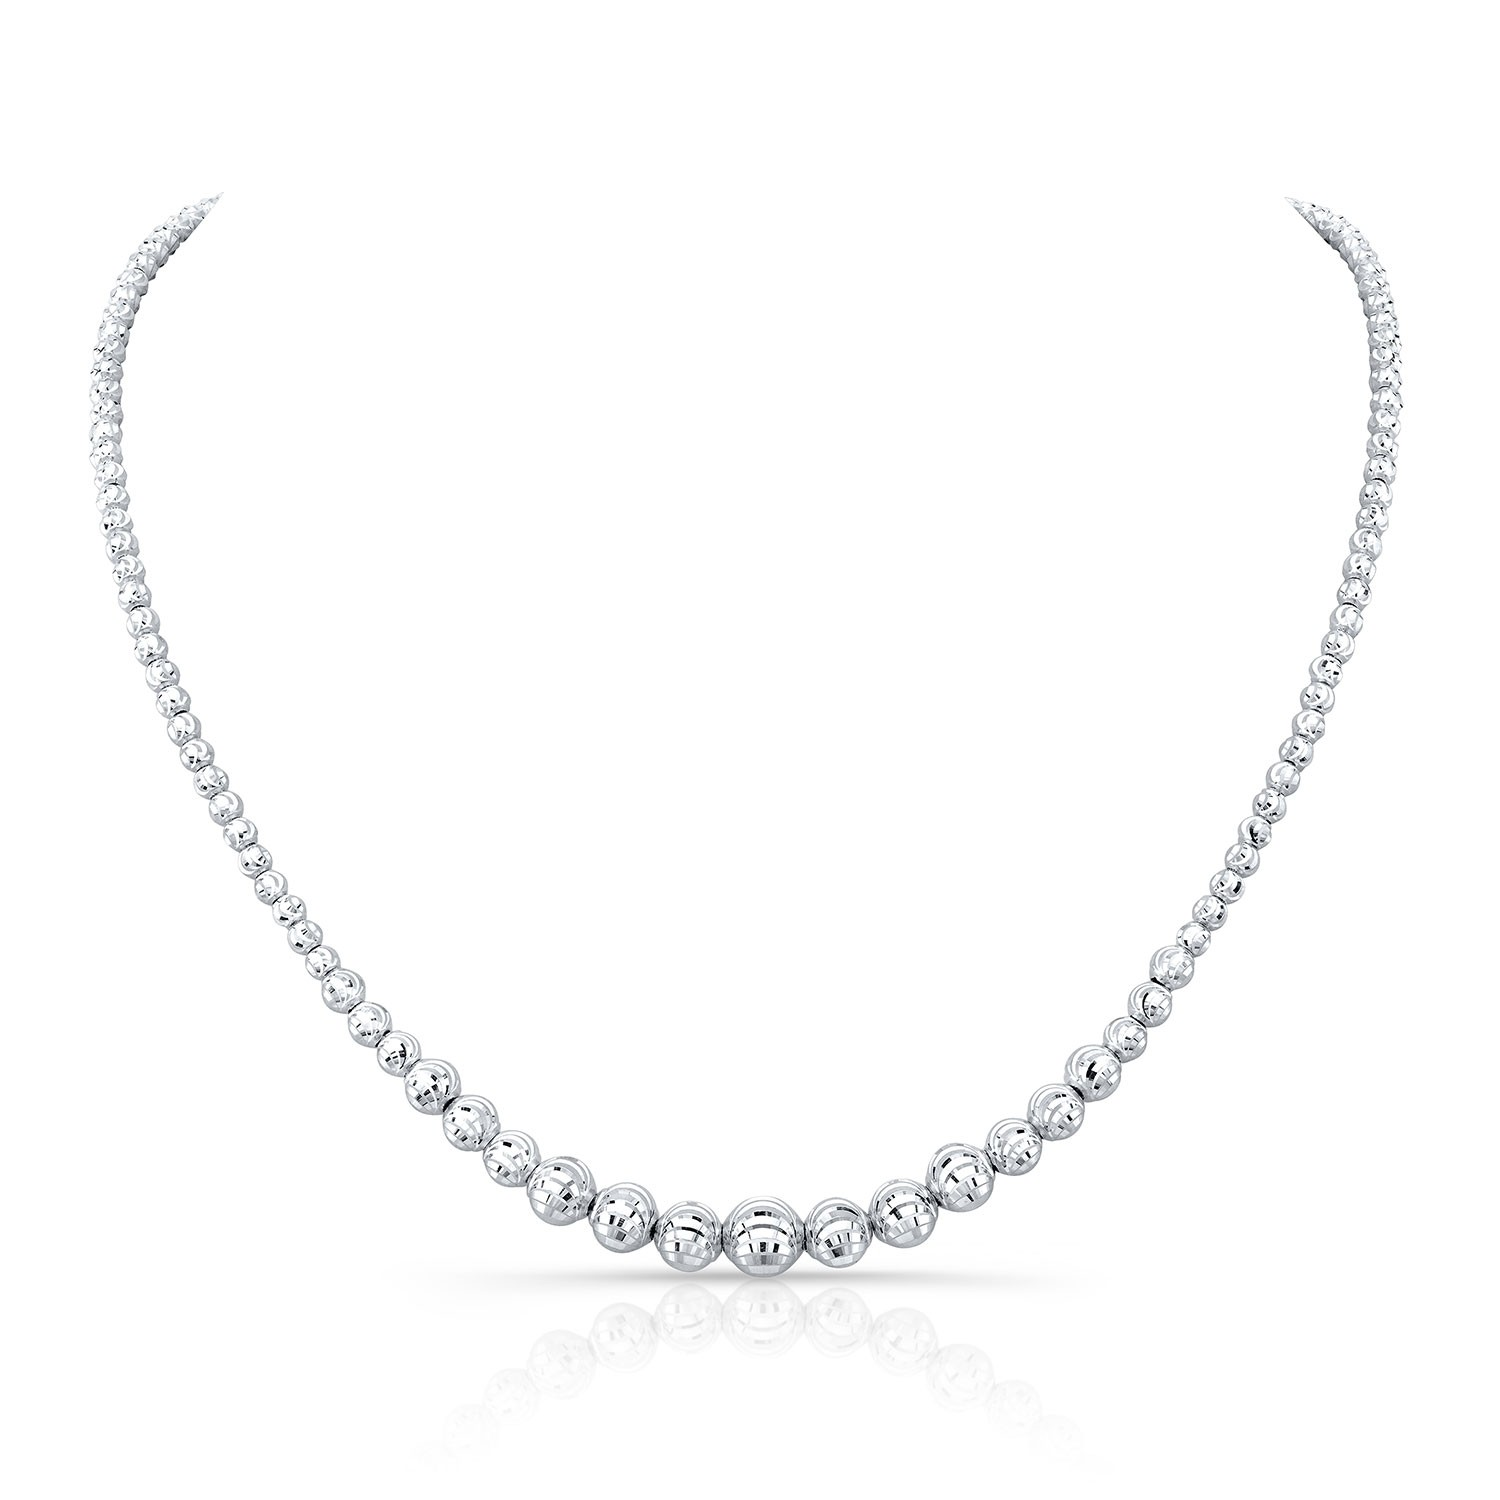 14k White Gold Graduated Diamond Cut Bead Choker